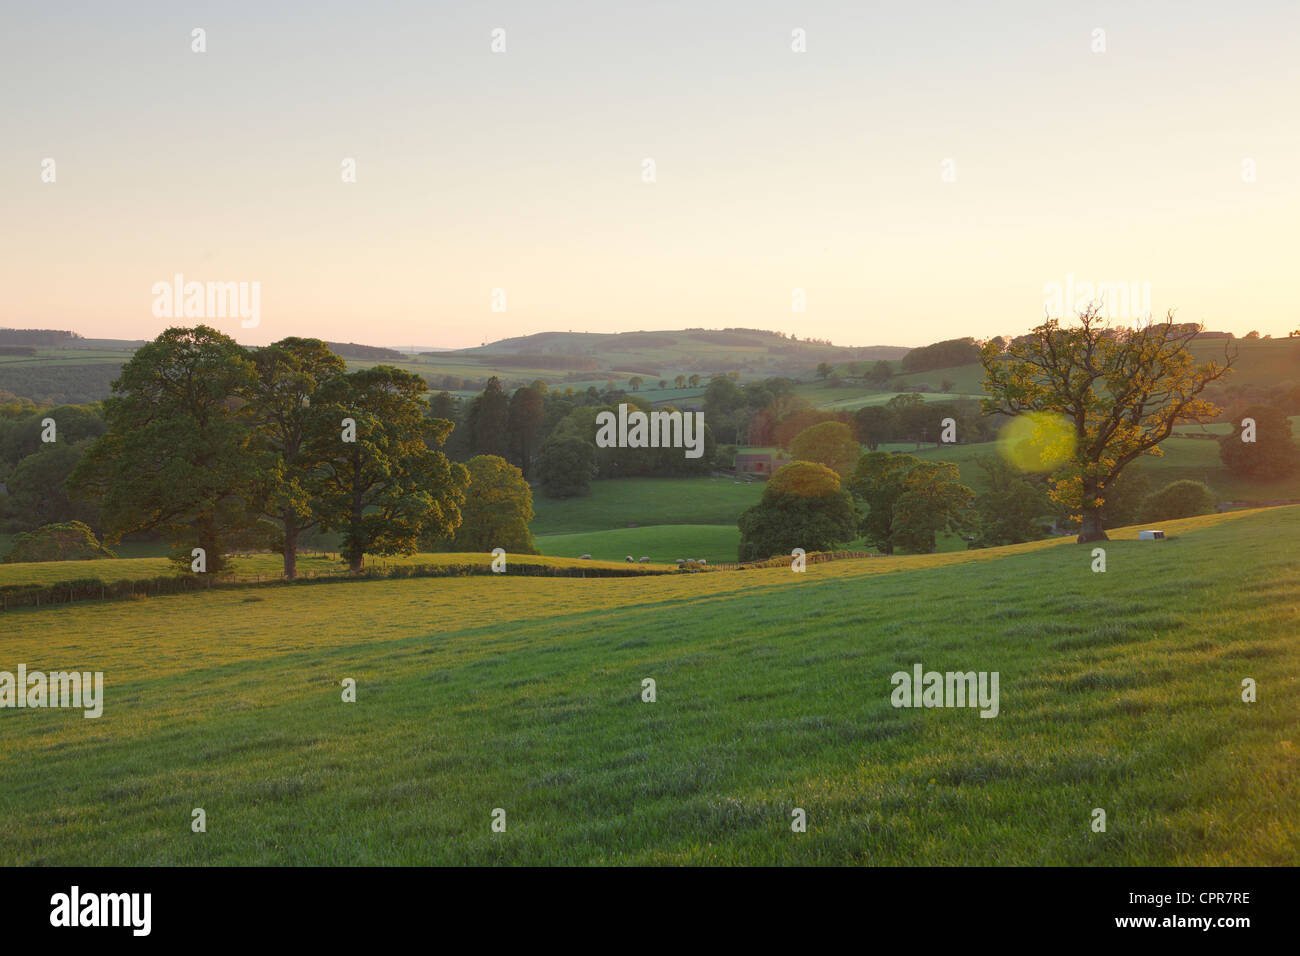 Trees and fields in golden light on a summers evening at Armathwaite, Eden Valley, Cumbria, England, UK - Stock Image